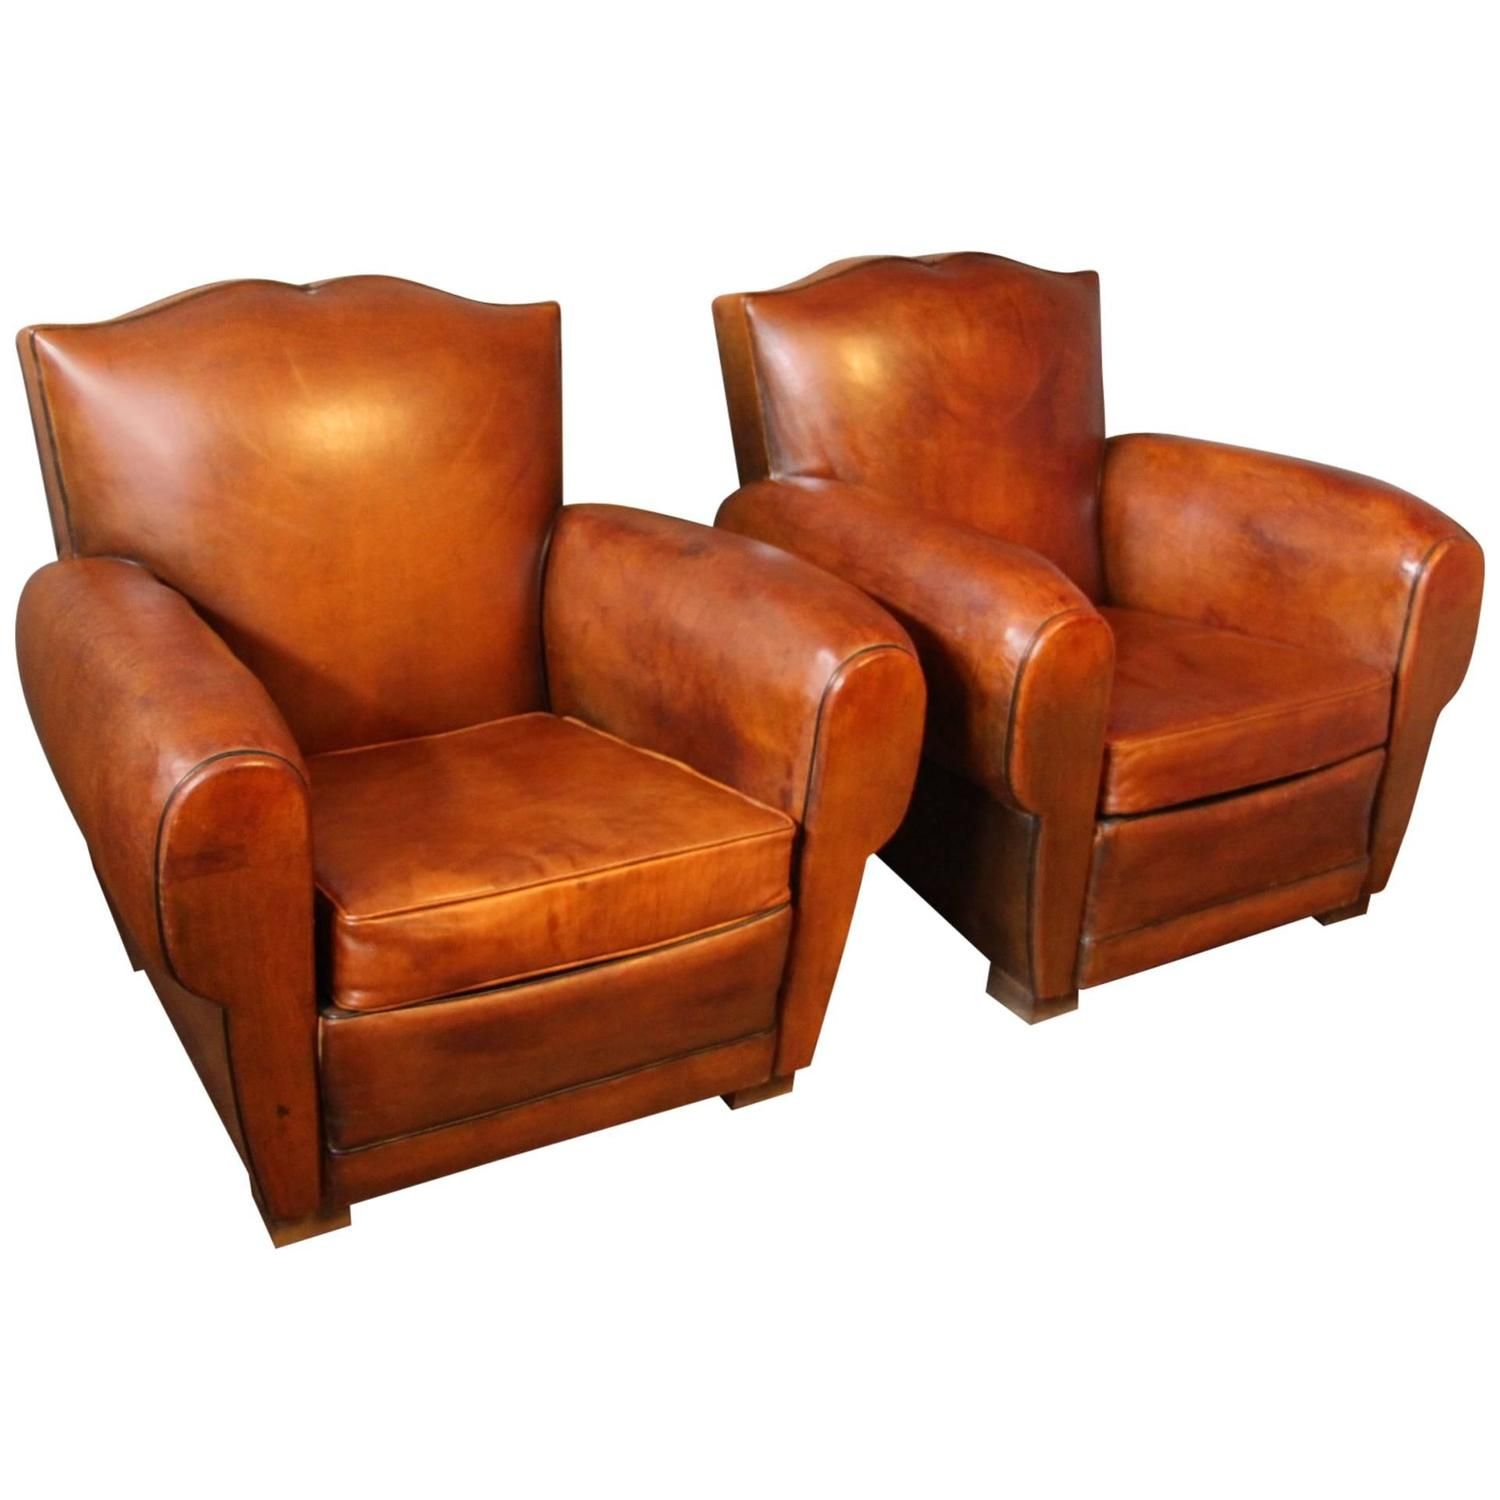 Attractive Pair Of 1930s French Leather Club Chairs, Mustache Back